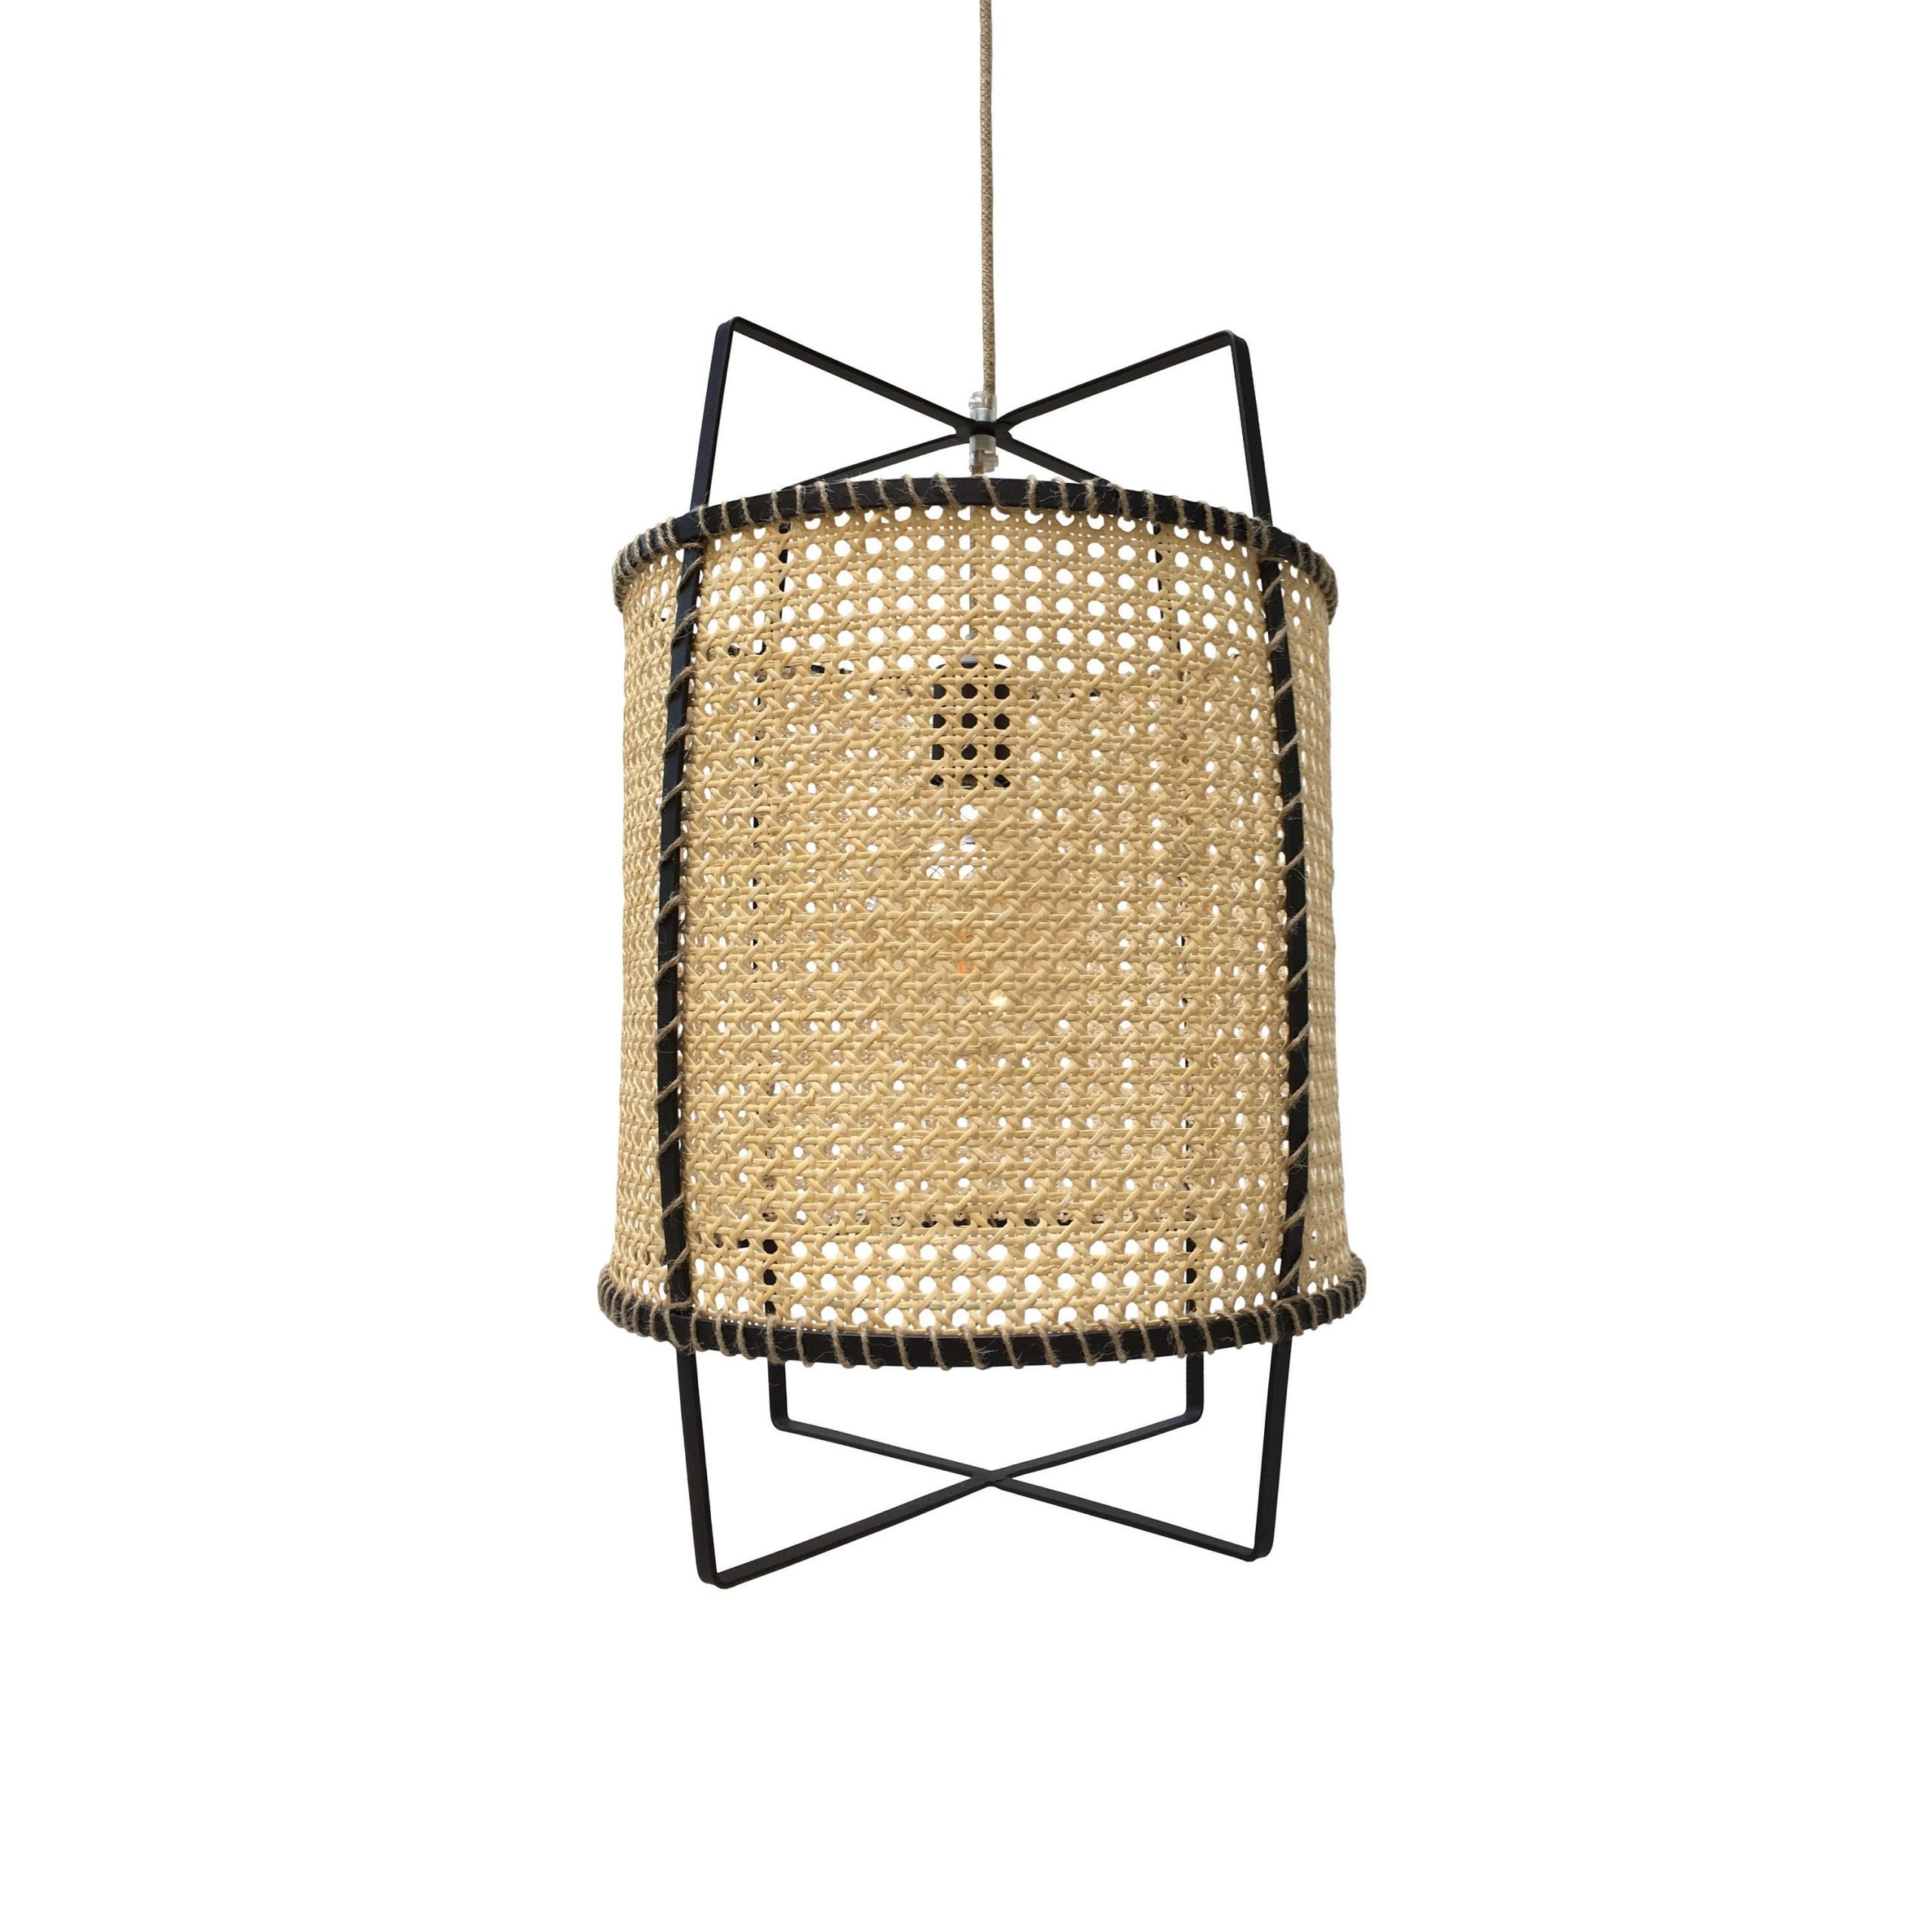 Rattan Cane Pendant Light